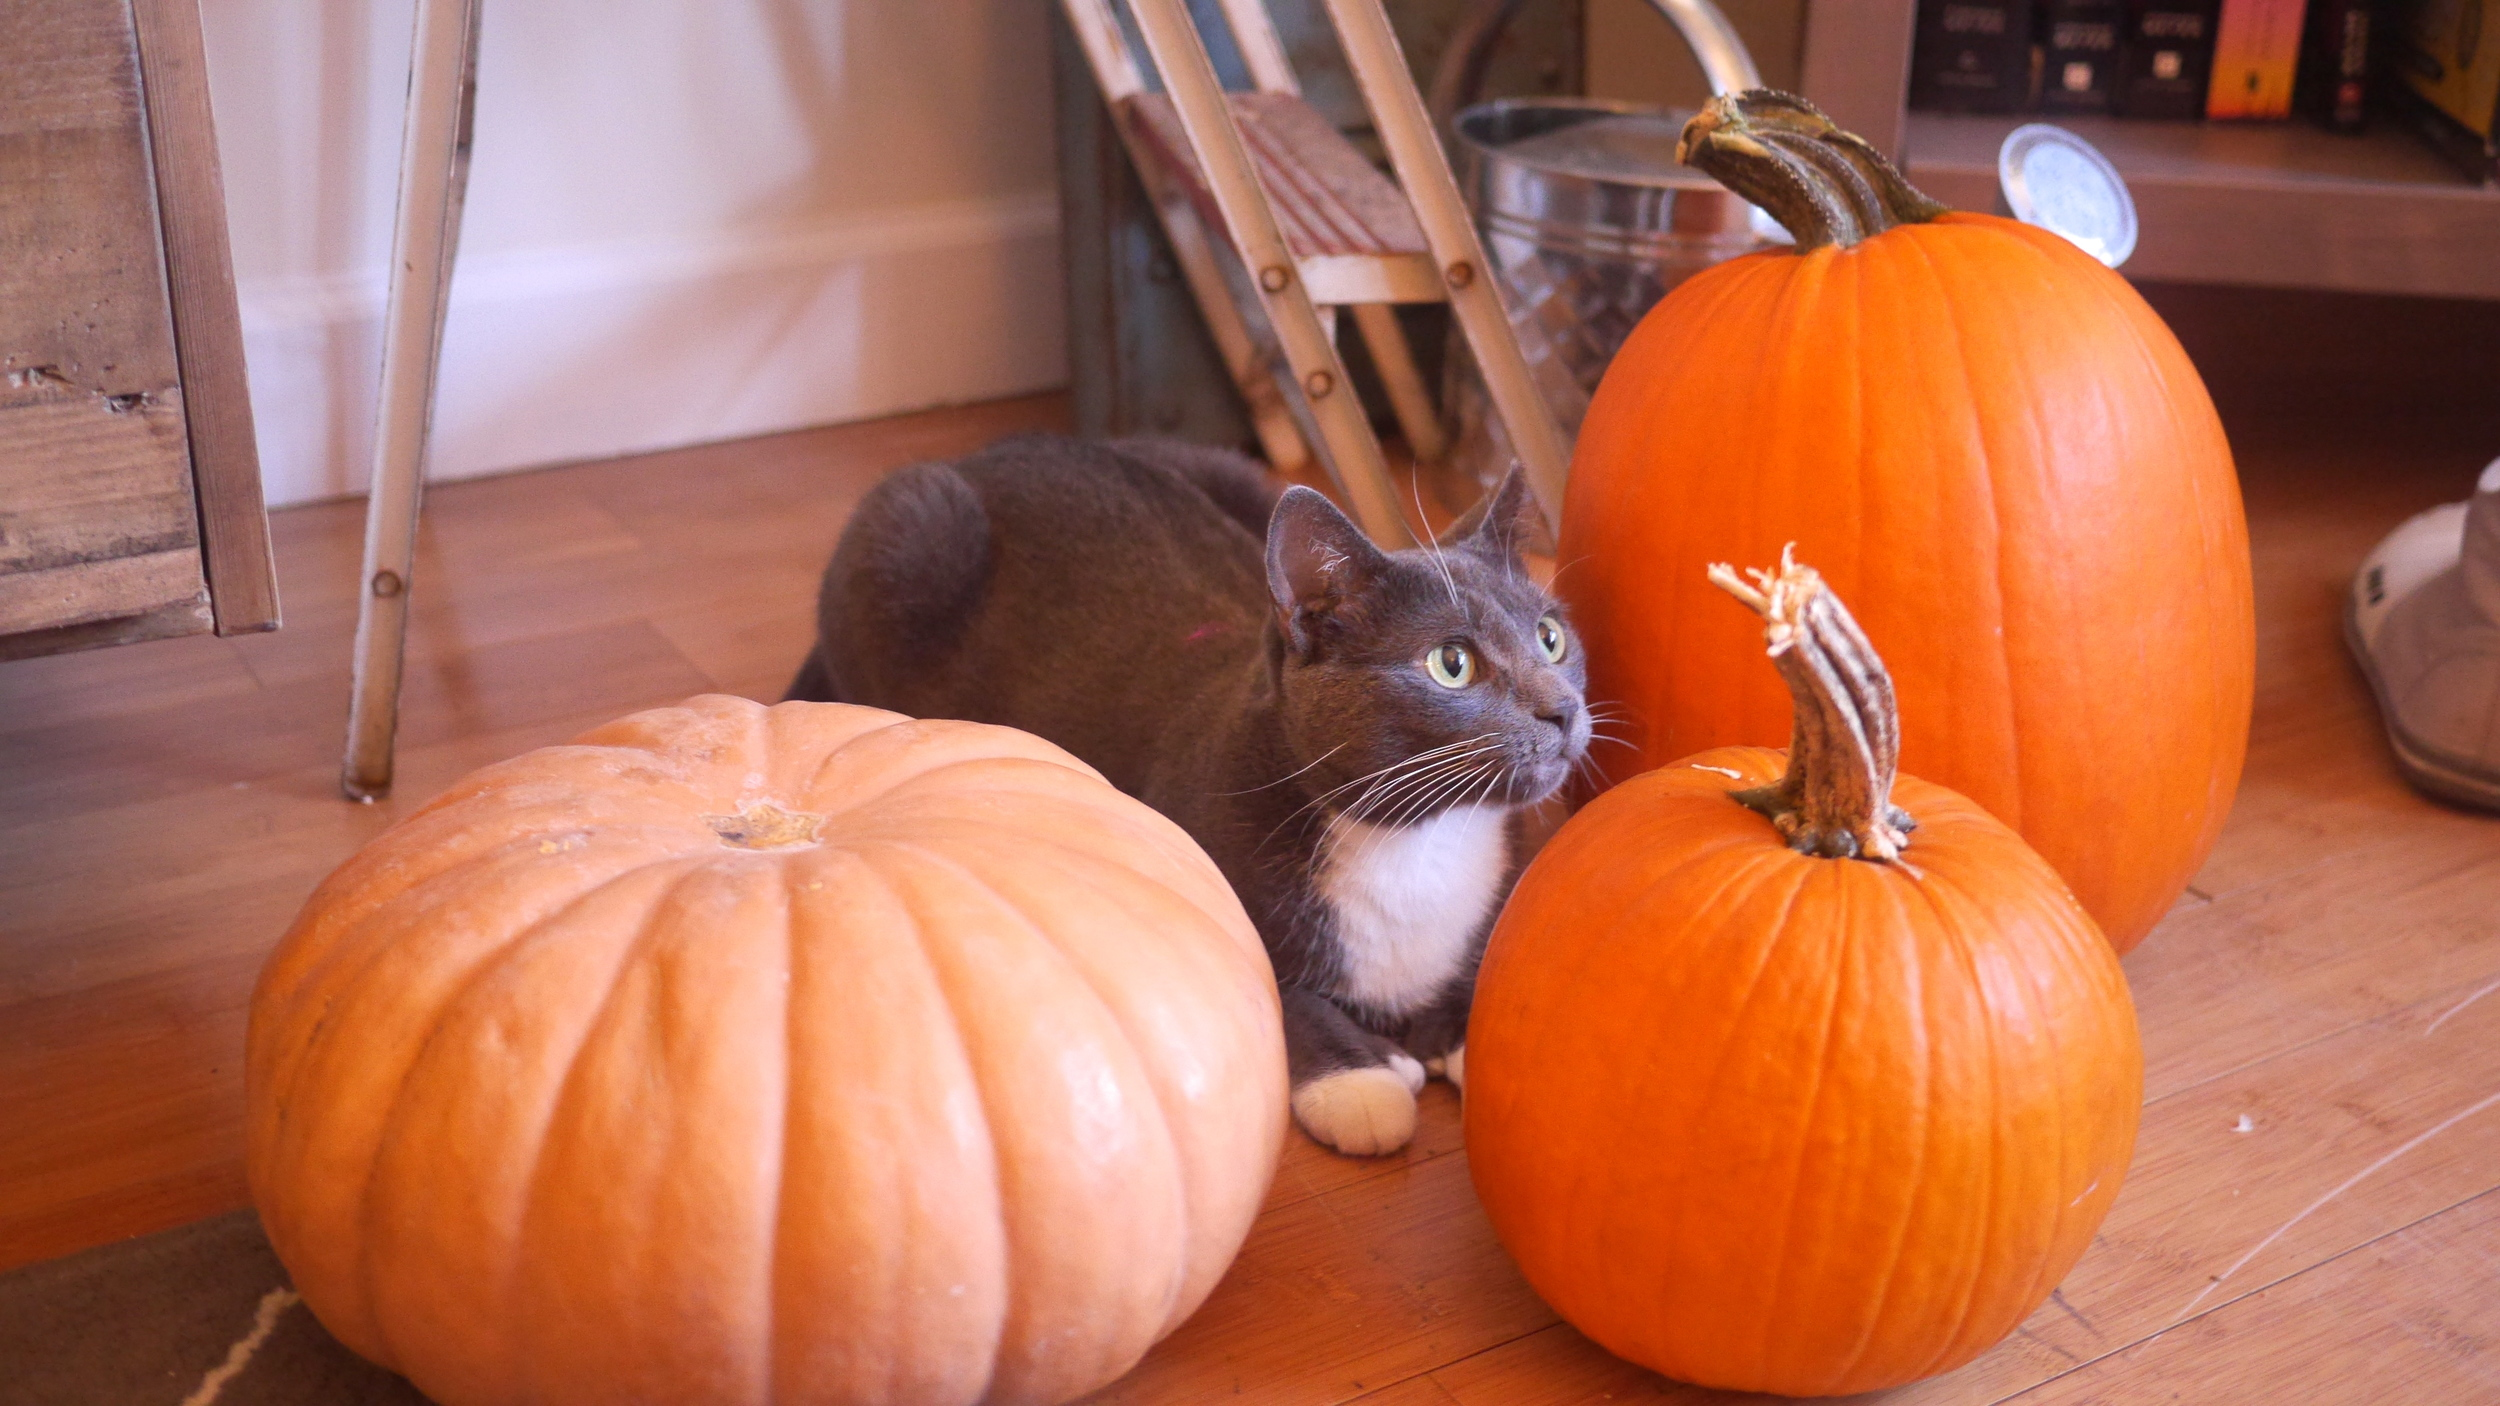 Renly trying to fit in with some pumpkins